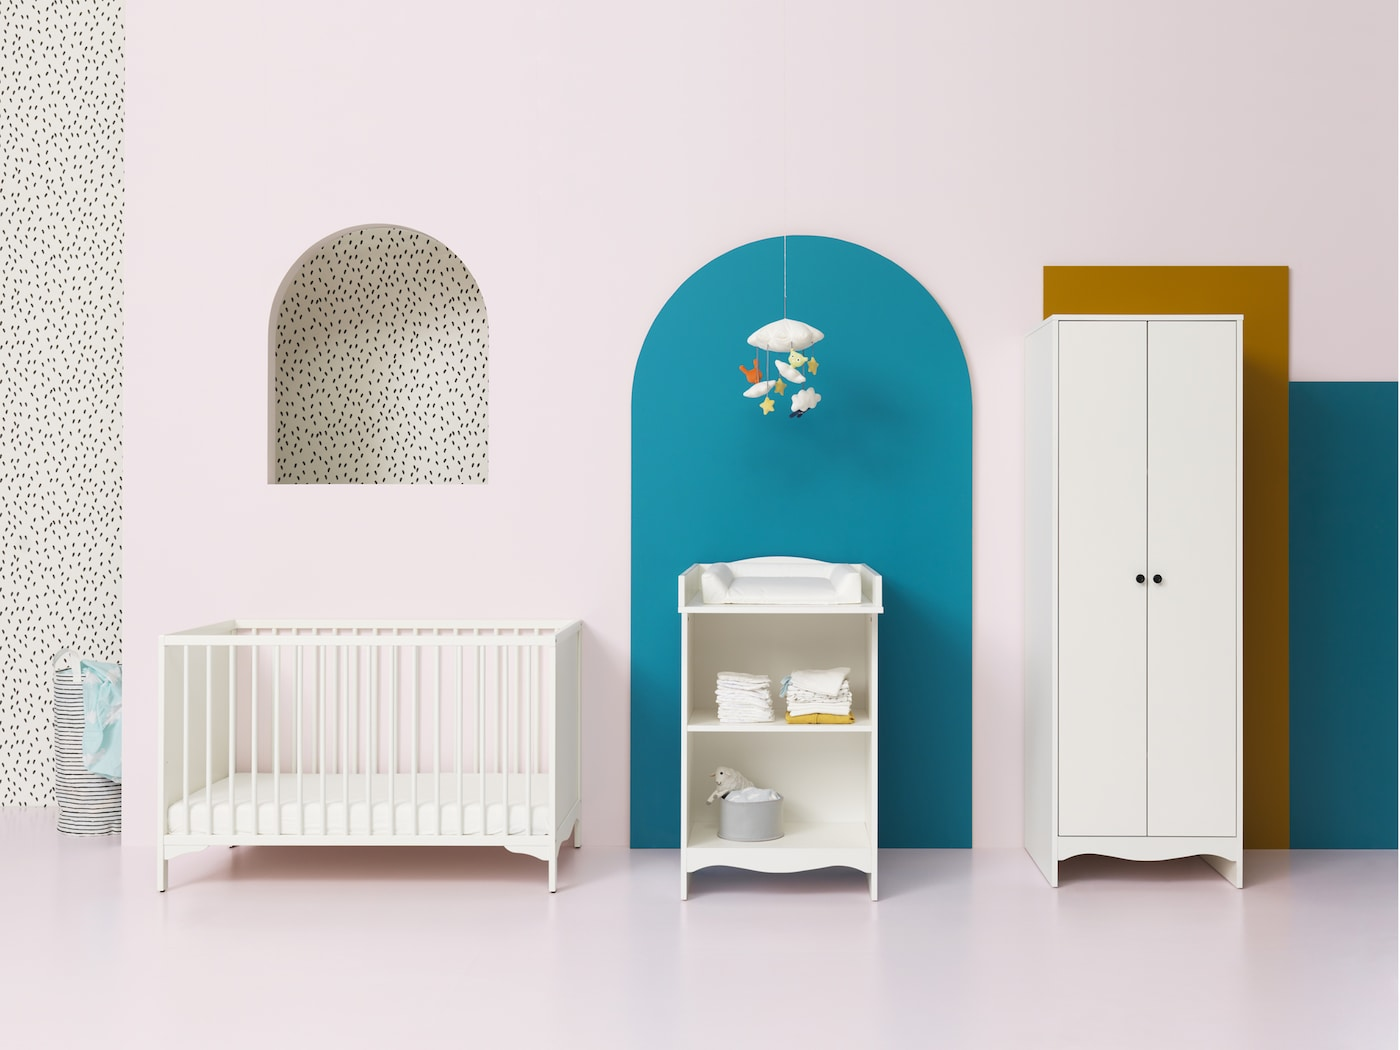 IKEA SOLGUL white cot, changing table and wardrobe were designed with focus on safety, comfort and non-toxic materials.